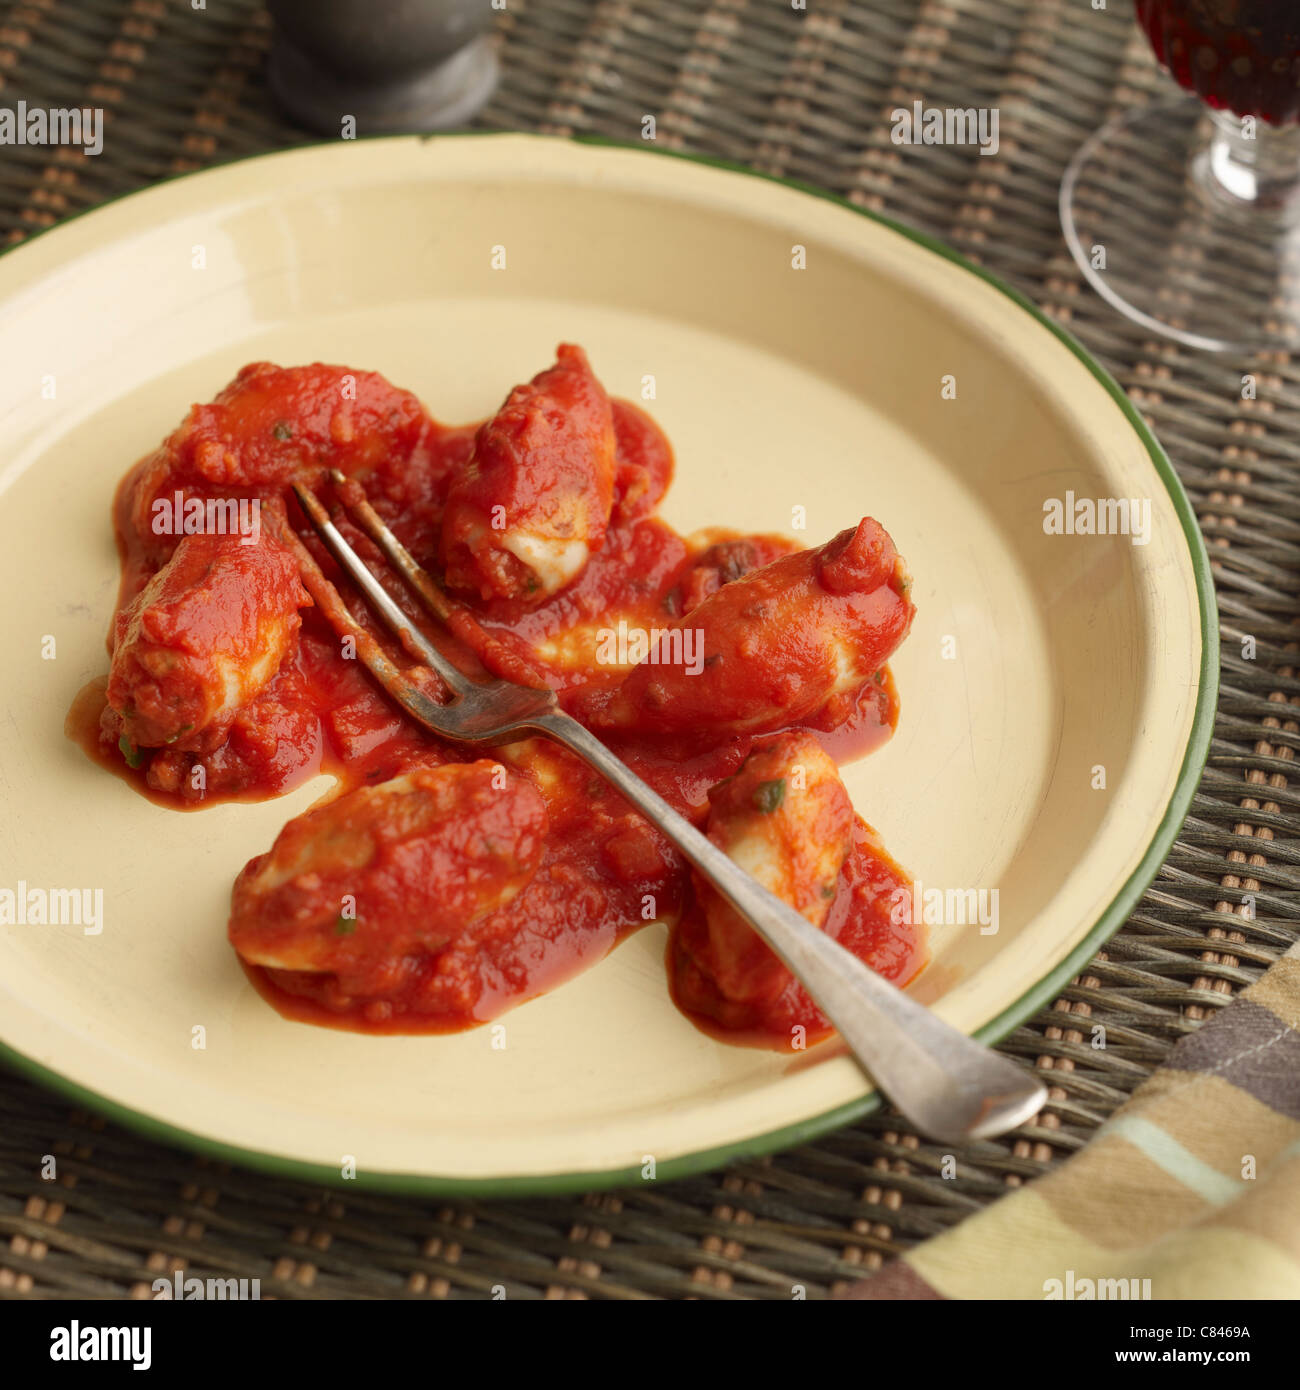 Plate of stuffed squid provencal - Stock Image